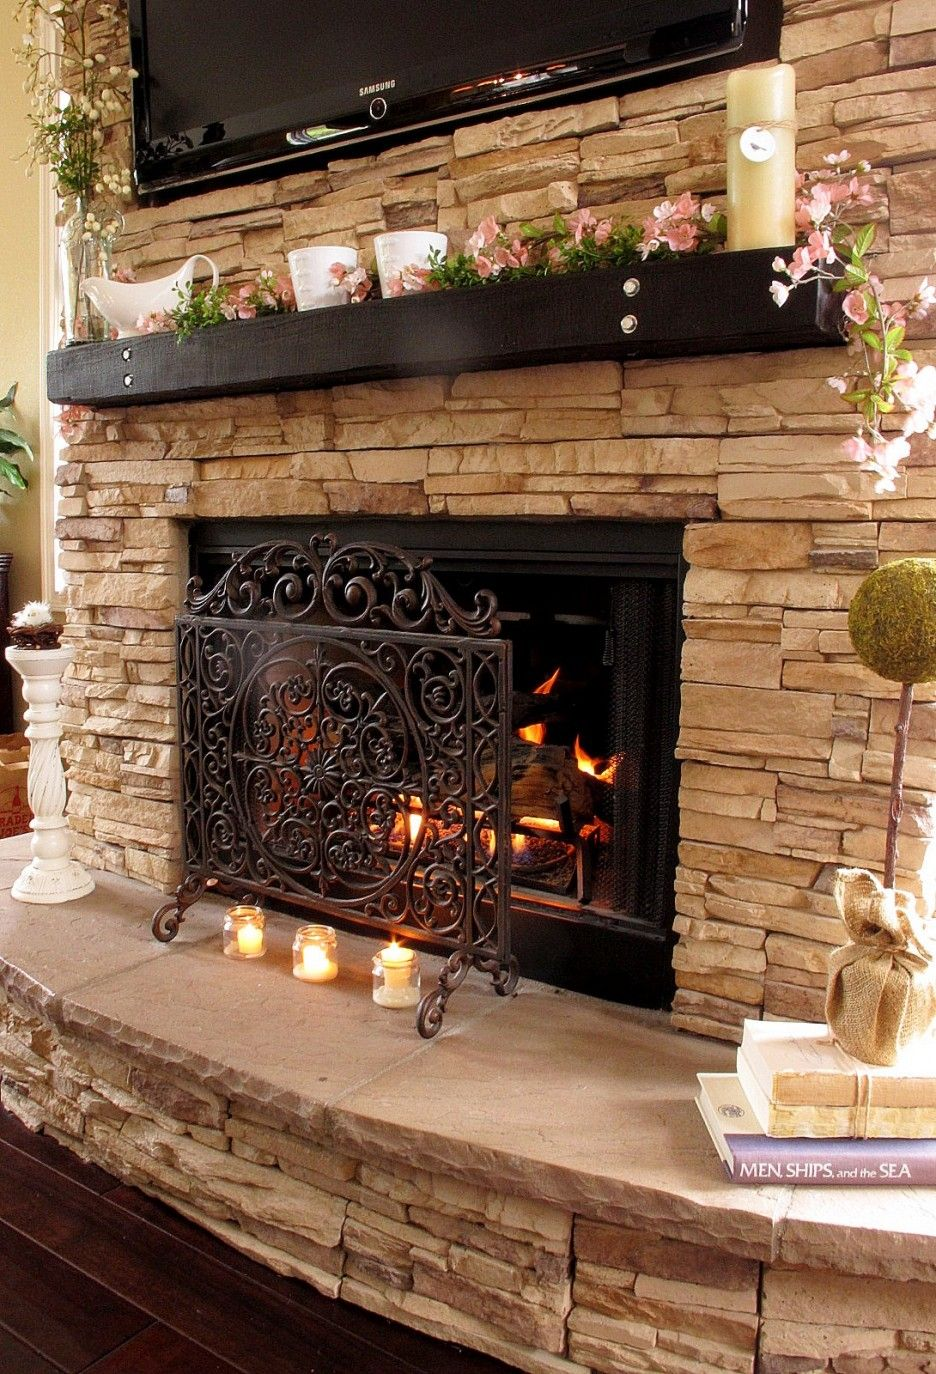 Ravishing stacked stoned fireplace decoration combine harmonious